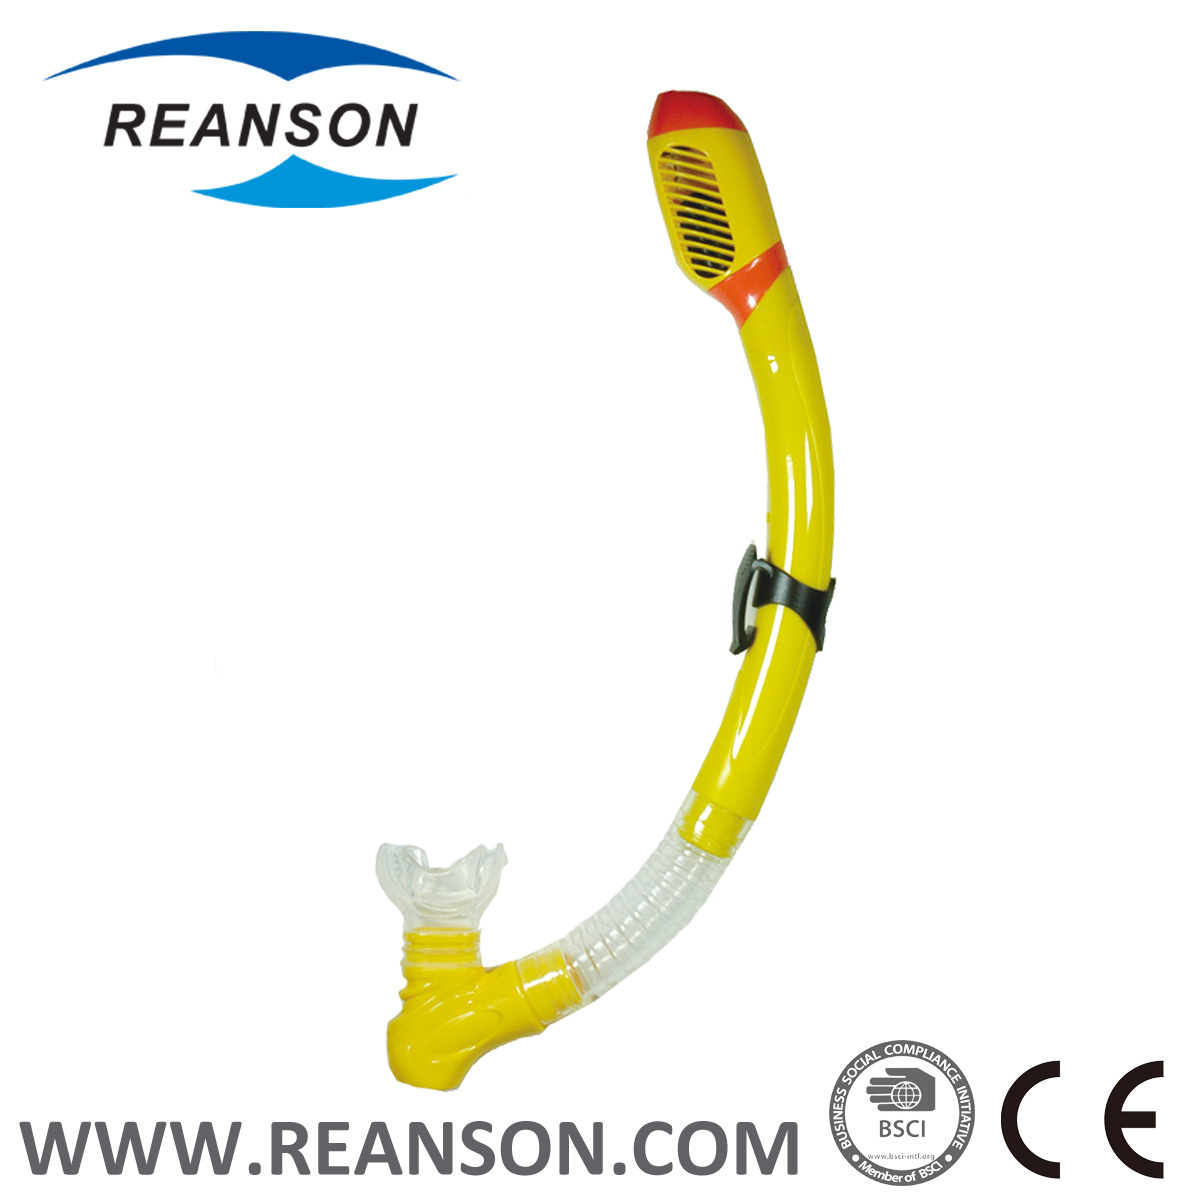 Reanson Professional Full Dry Snorkel